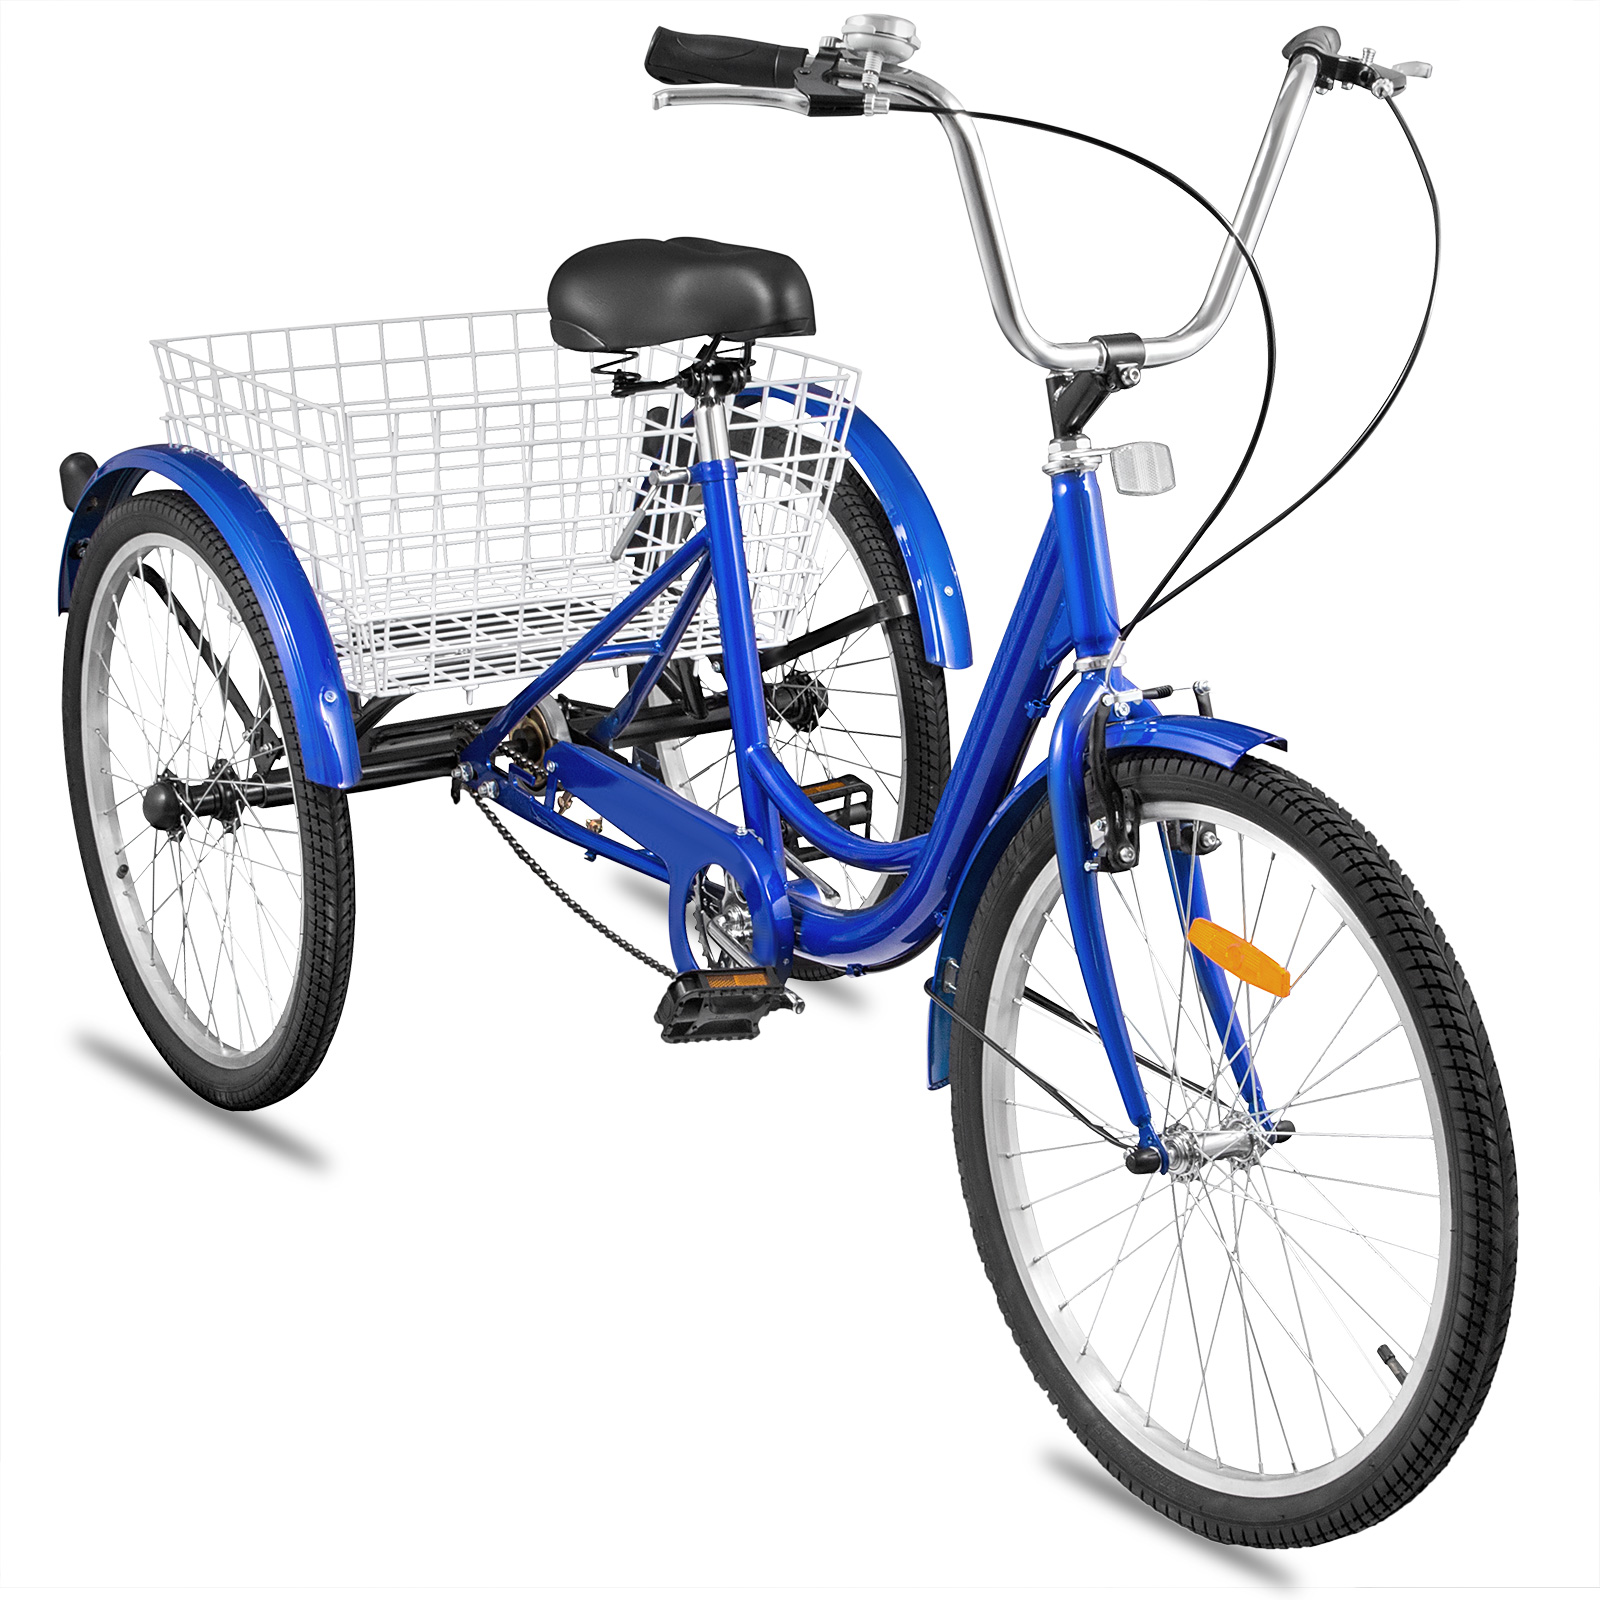 20-24-26-034-Adult-Tricycle-1-7-Speed-3-Wheel-Large-Basket-For-Shopping-Optional thumbnail 297